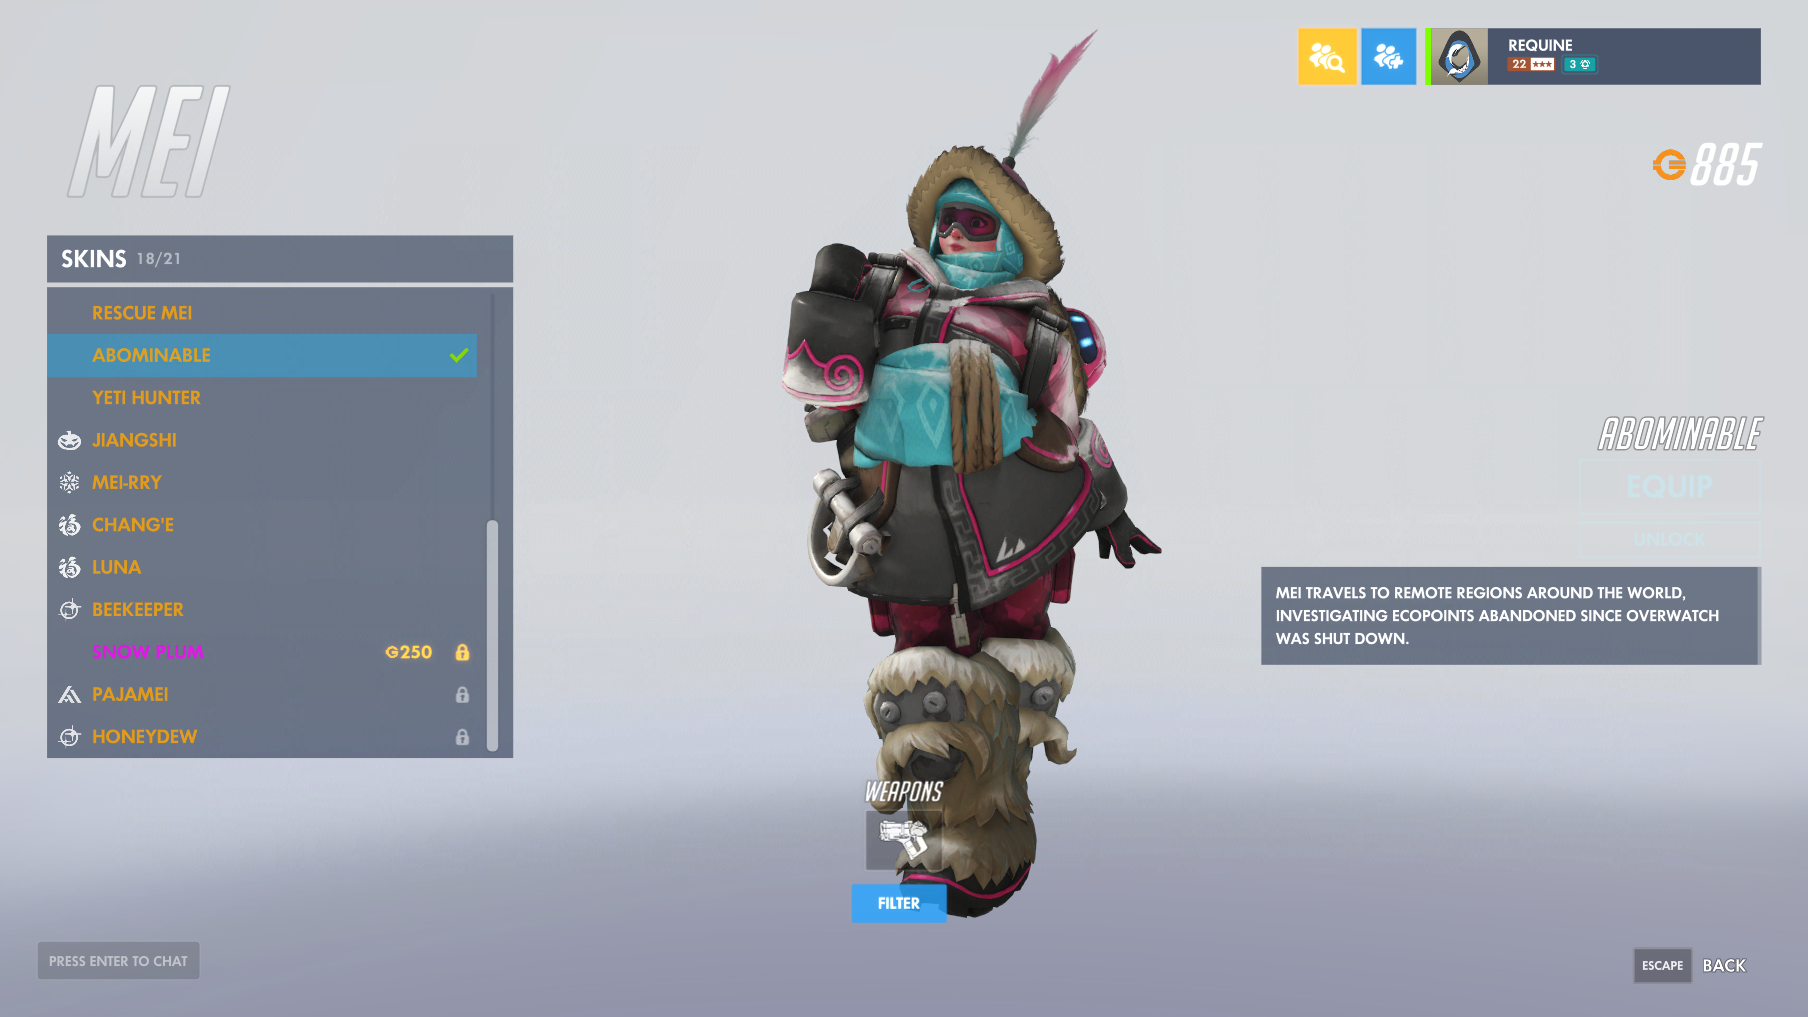 Overwatch fans are looking for lore in odd places